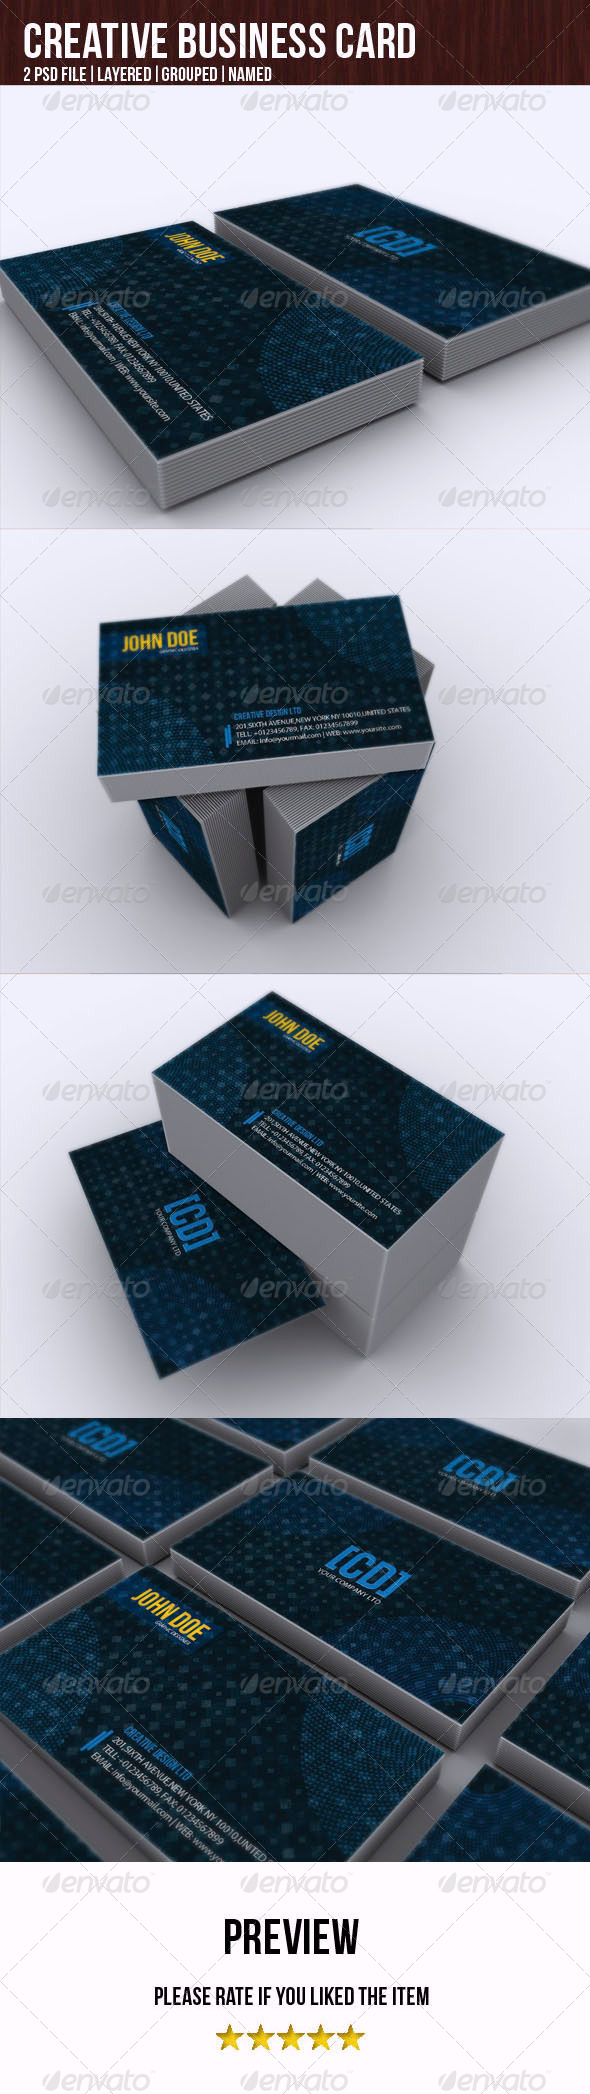 GraphicRiver Creative Design Business Card 4981712